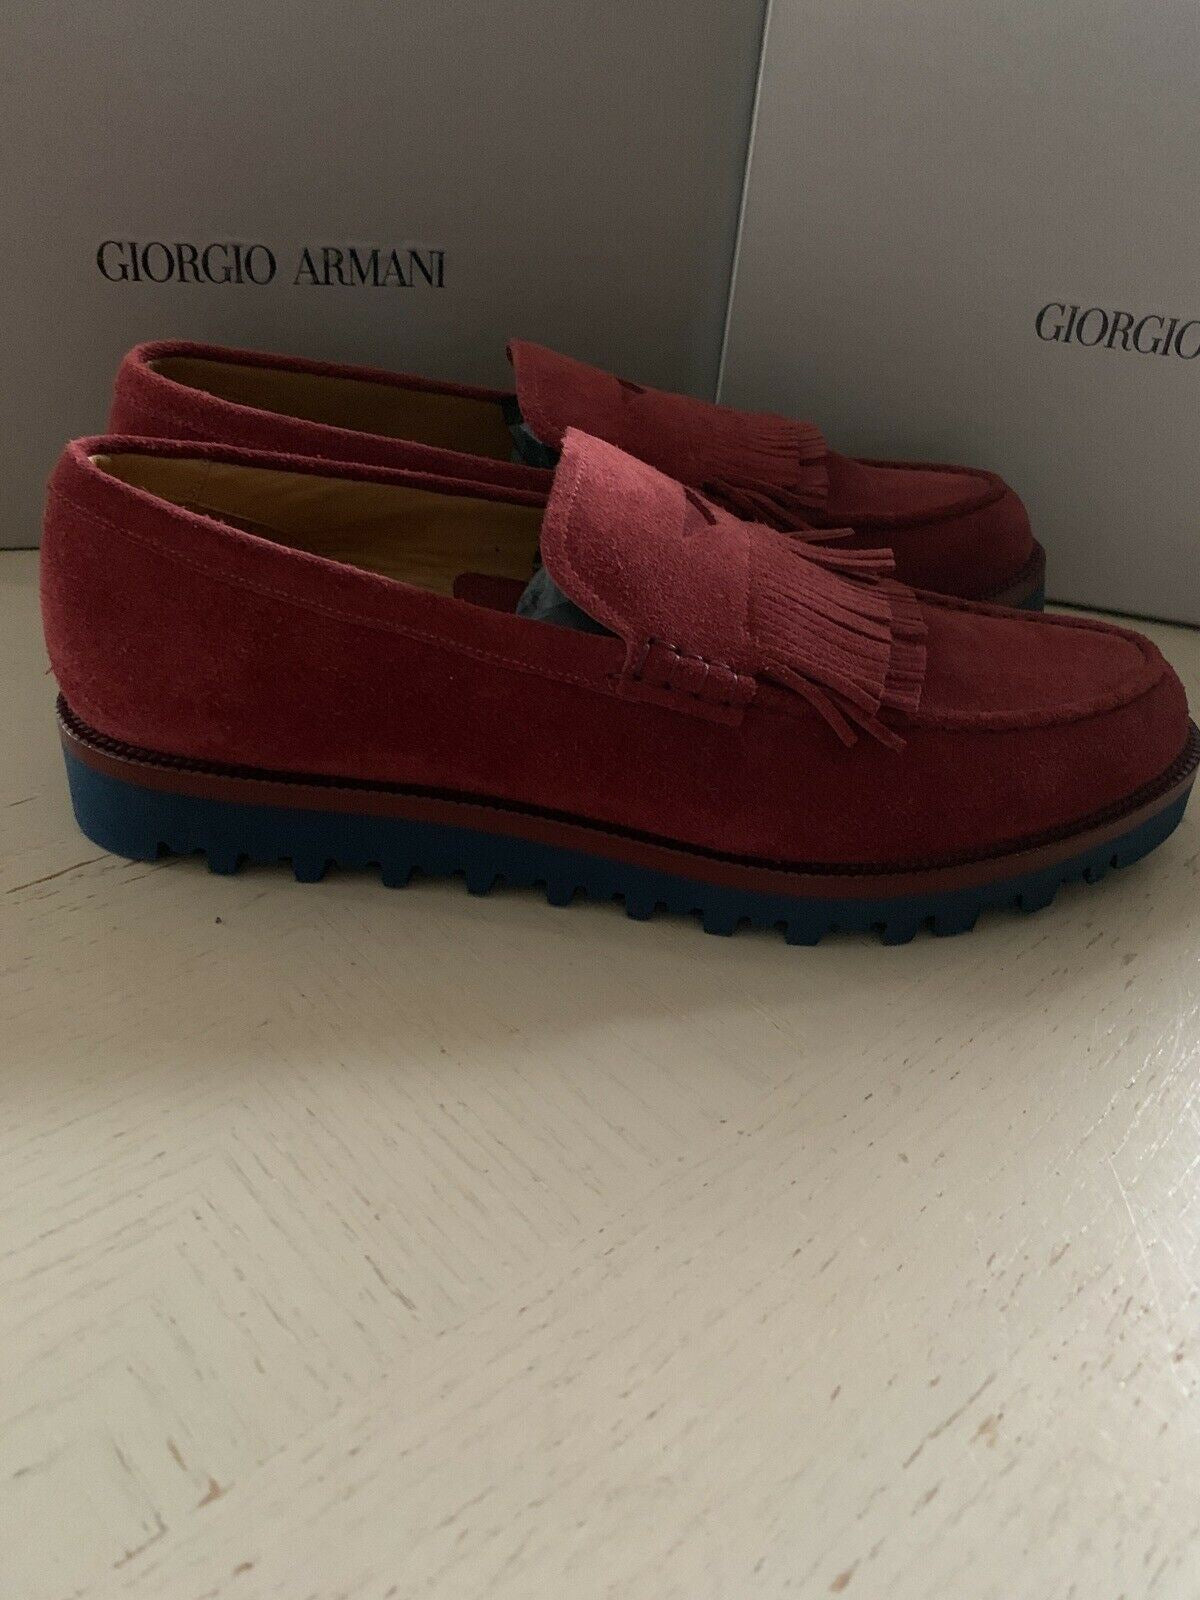 New $895 Giorgio Armani Mens Suede Loafers Shoes Burgundy 11 US/10 UK X2A313 Ita